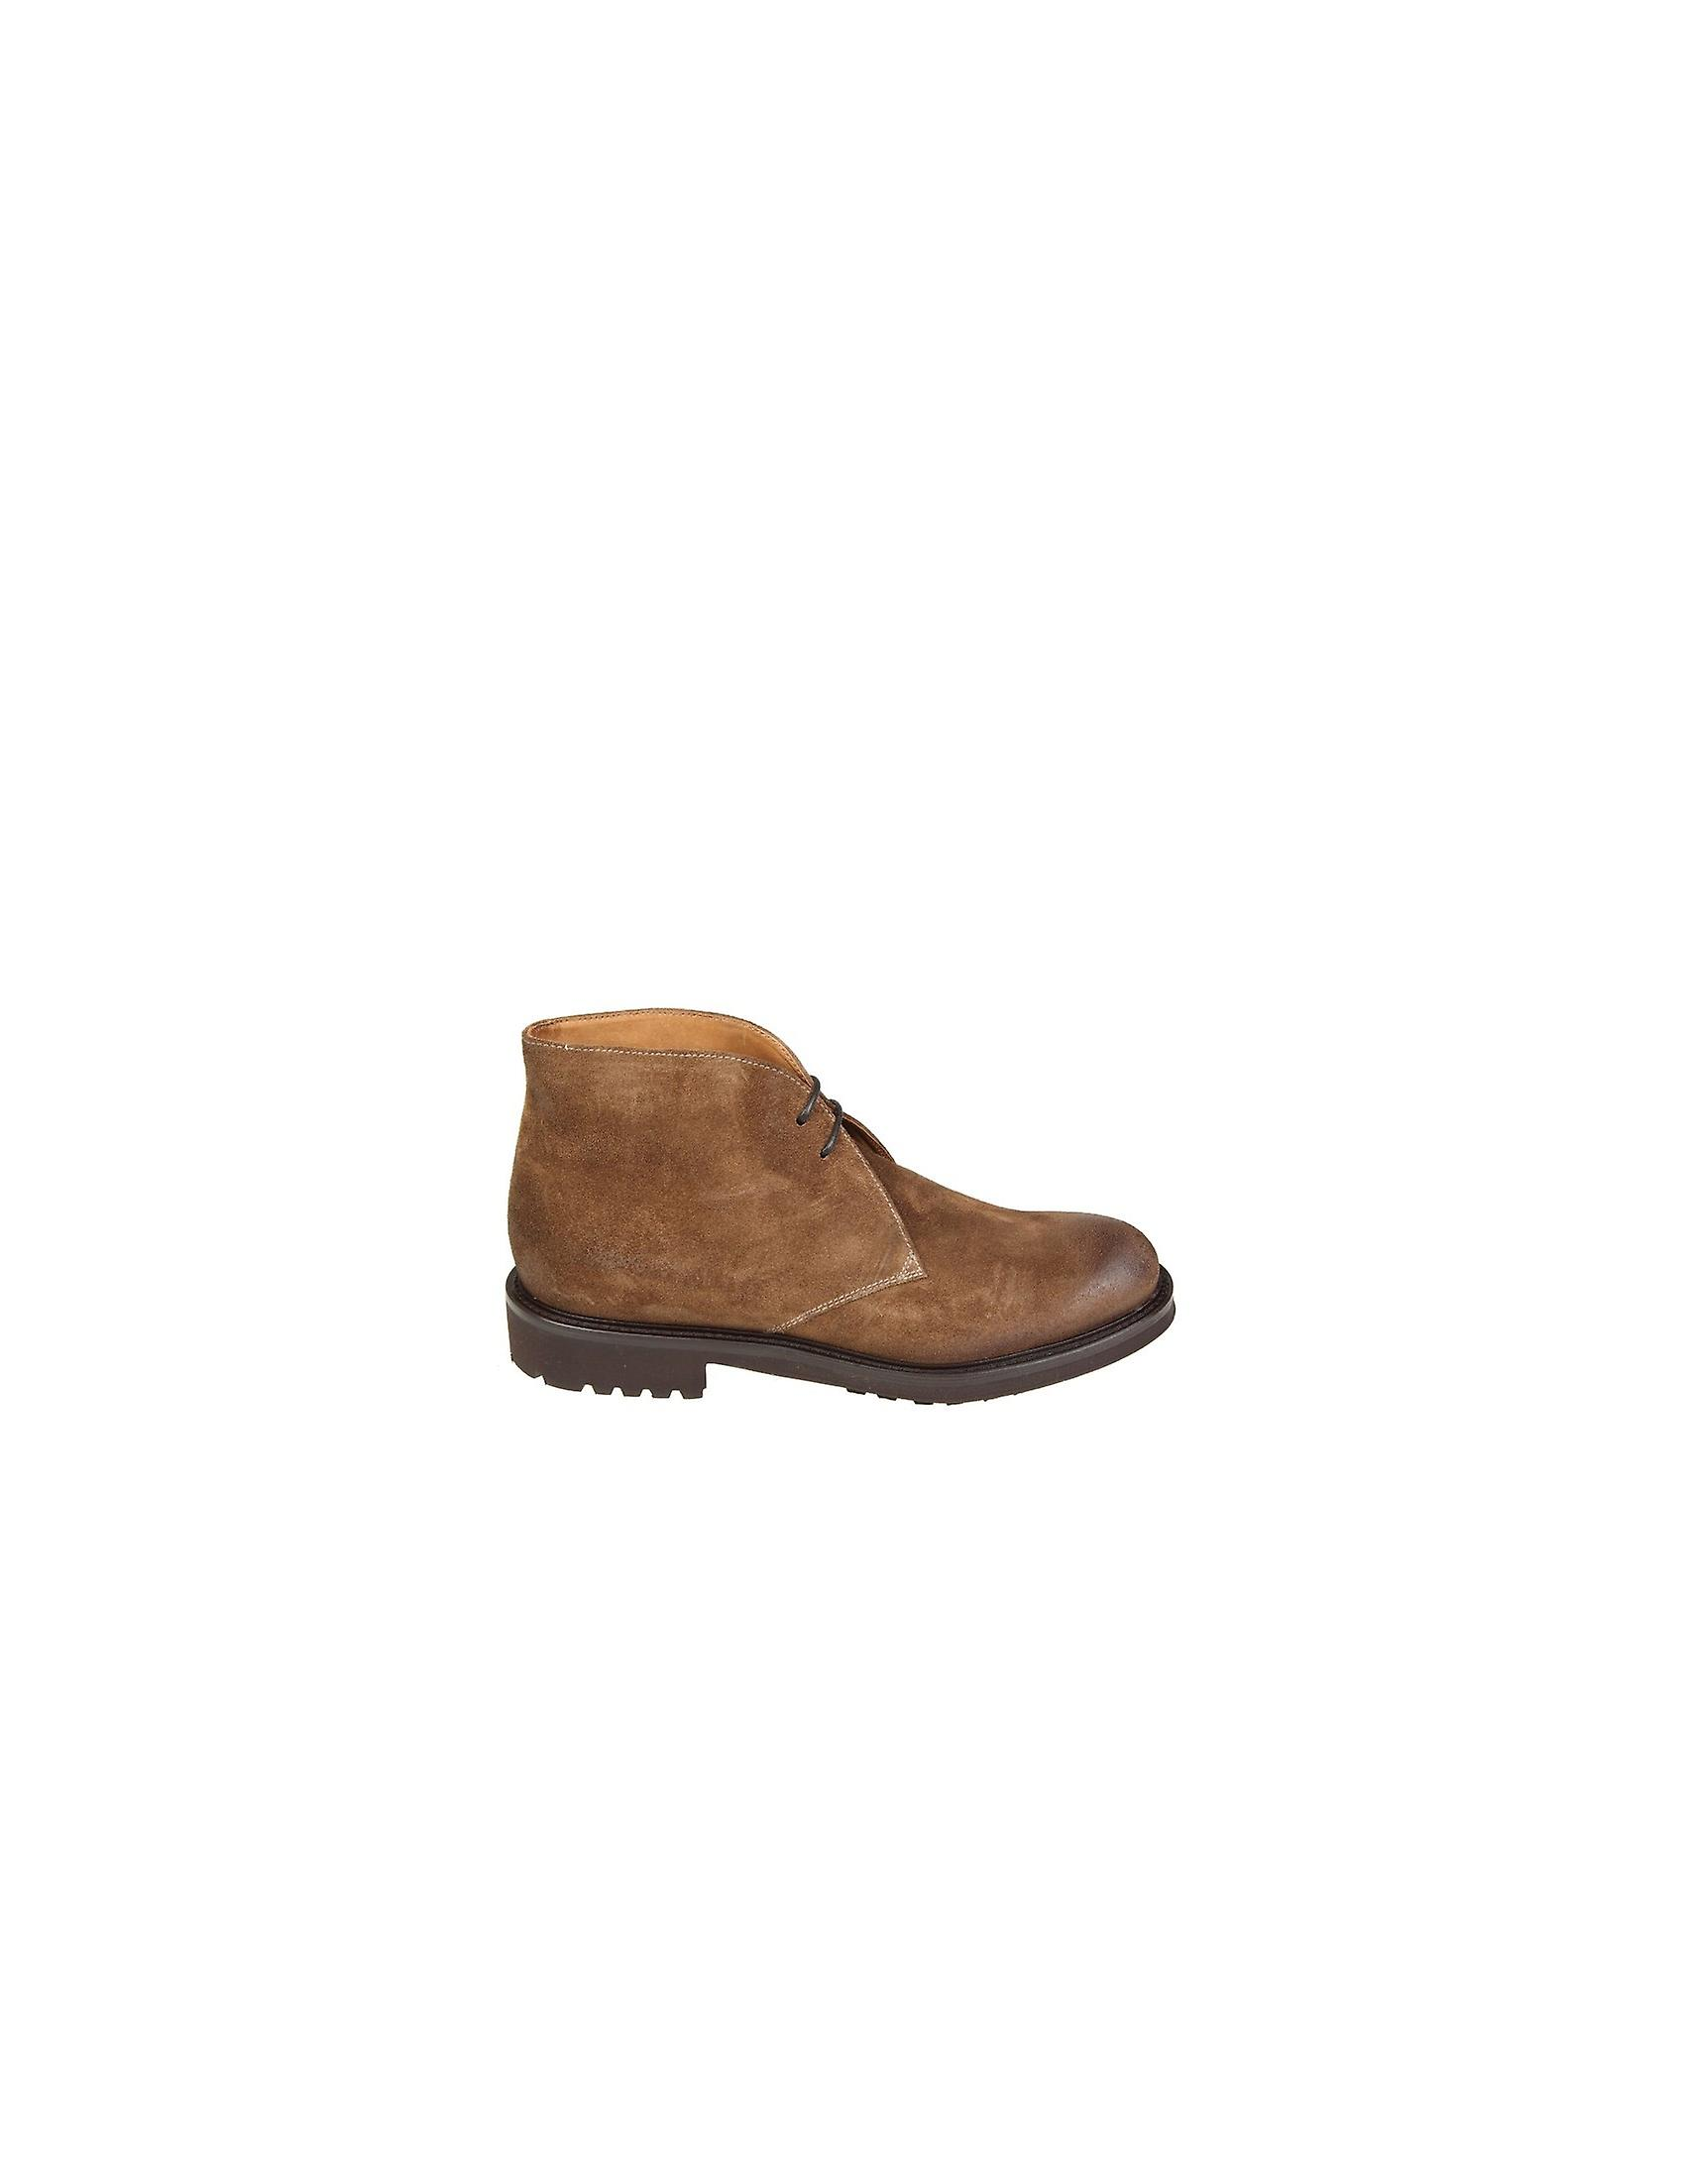 Doucal-apos;s 1247tabacco Men-apos;s Brown Suede Ankle Boots